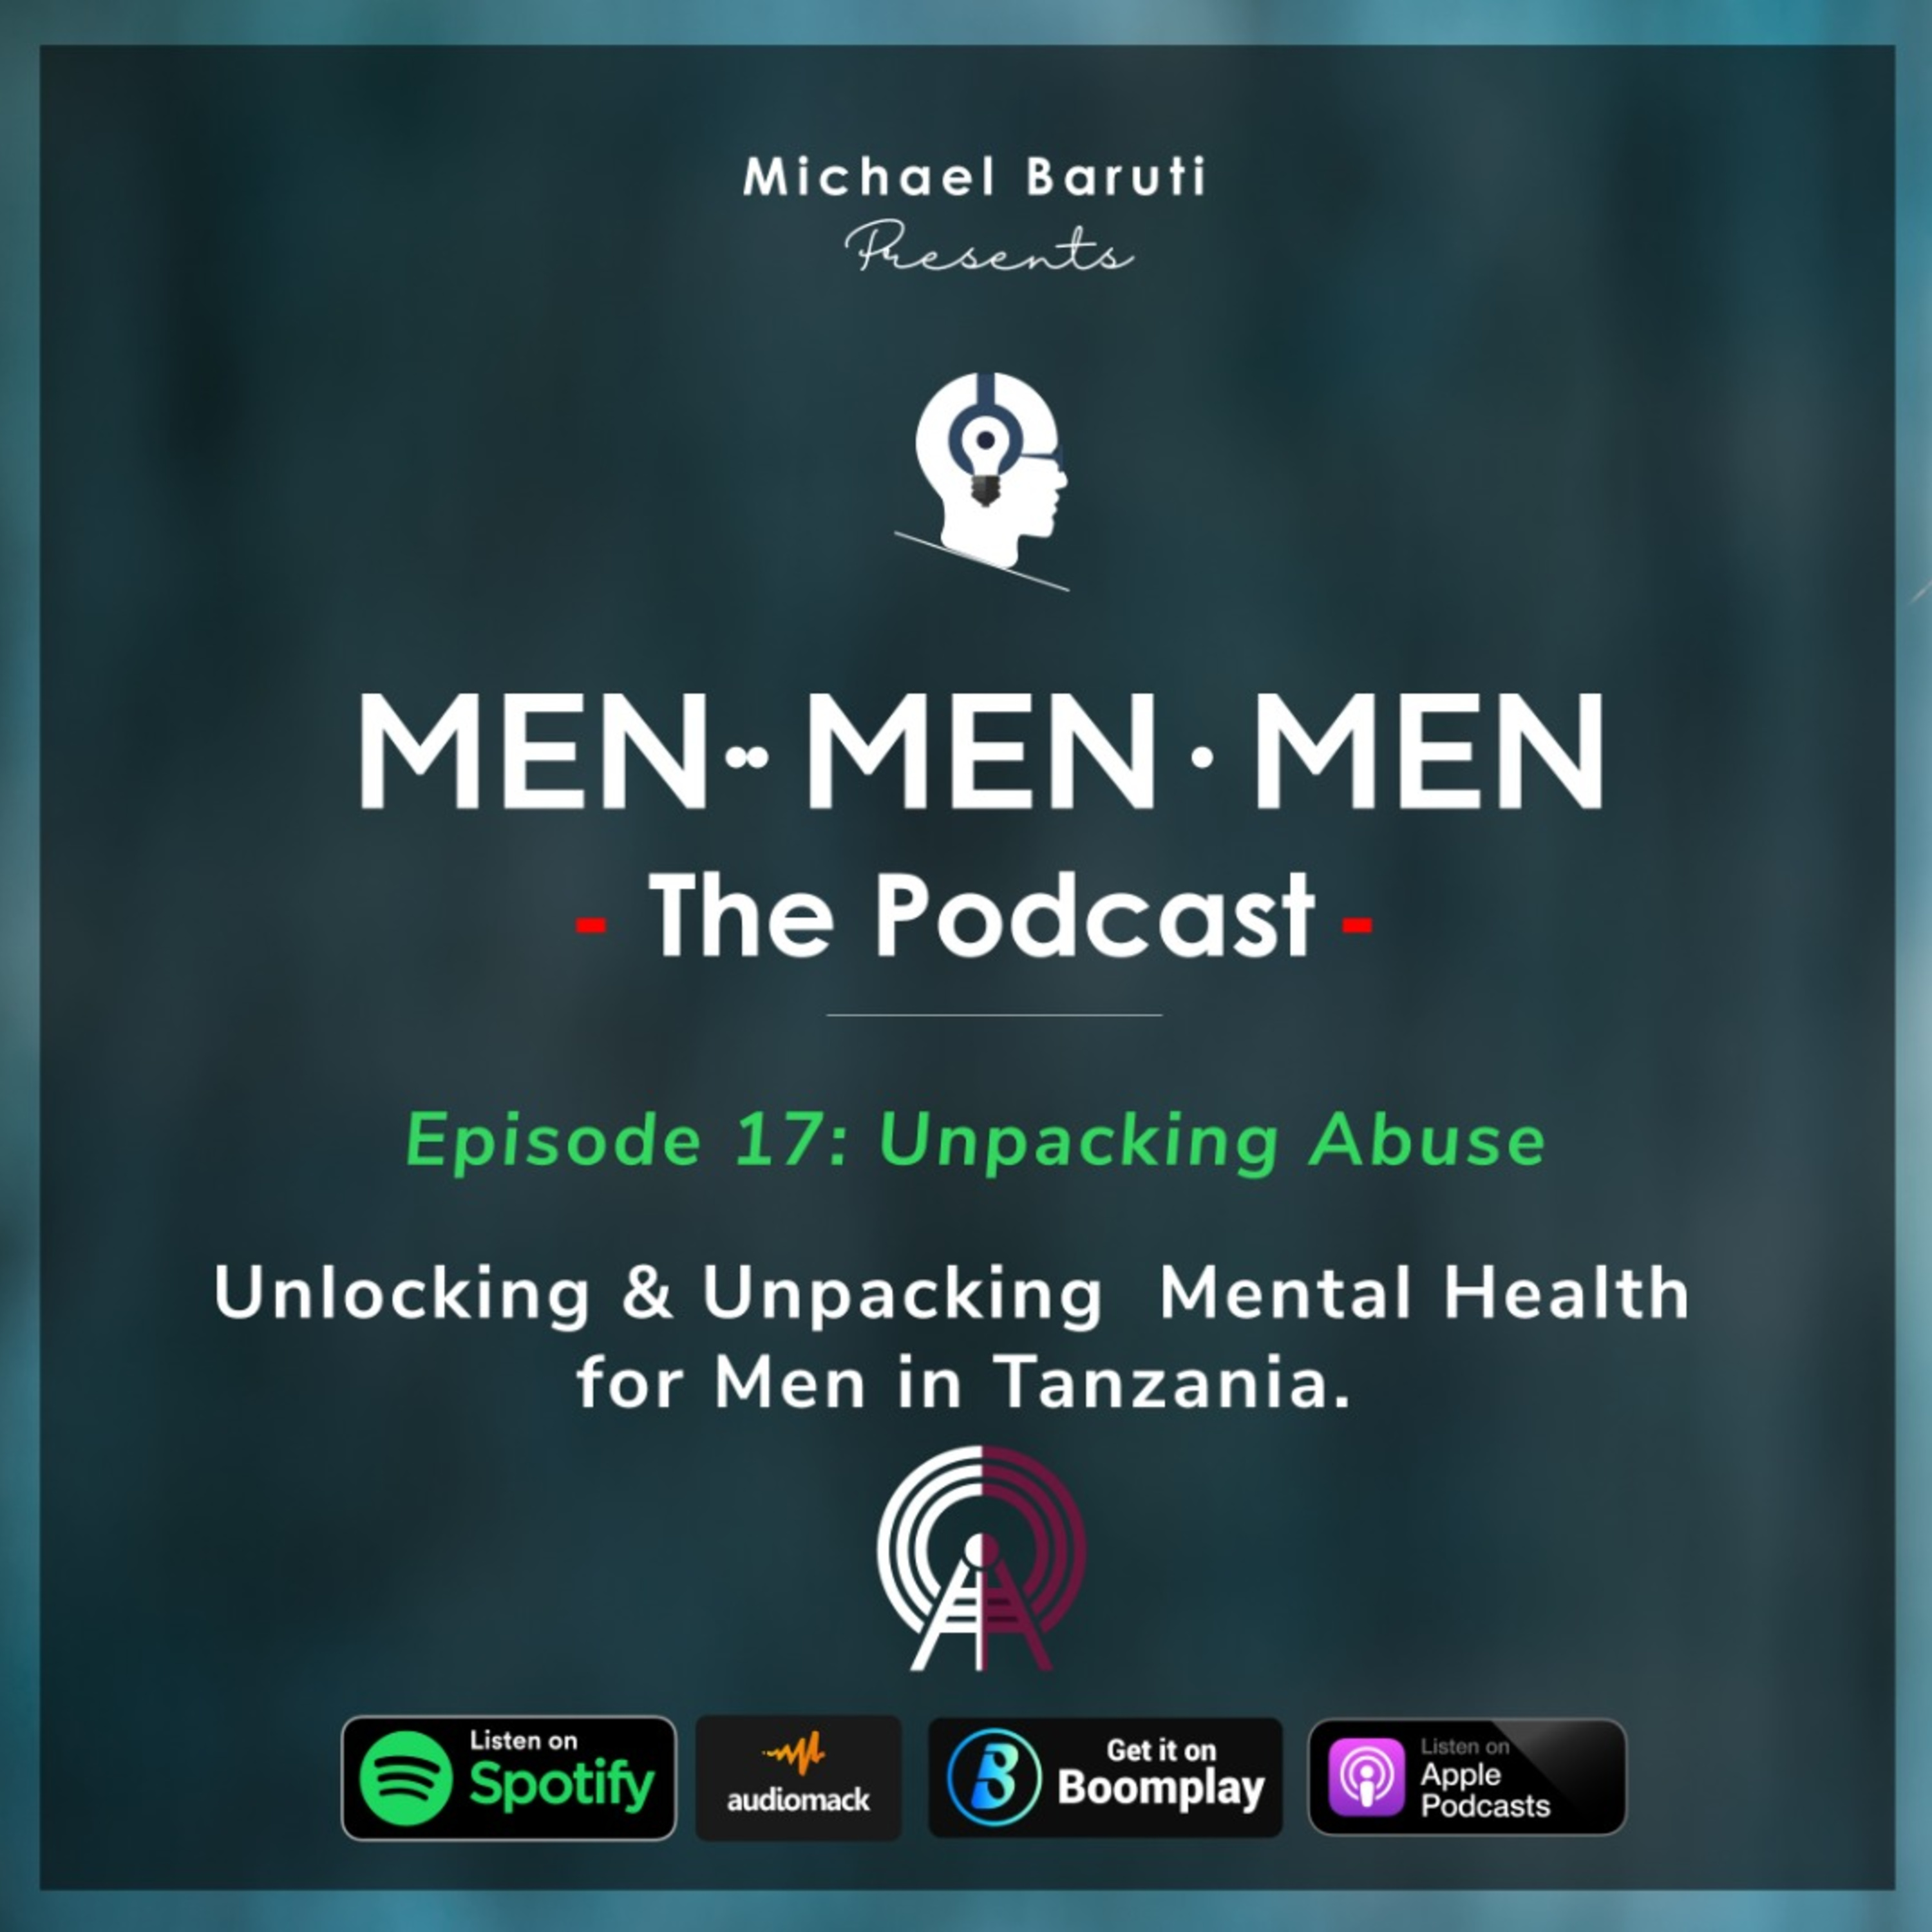 Men The Podcast - Ep 17 - Unpacking Abuse